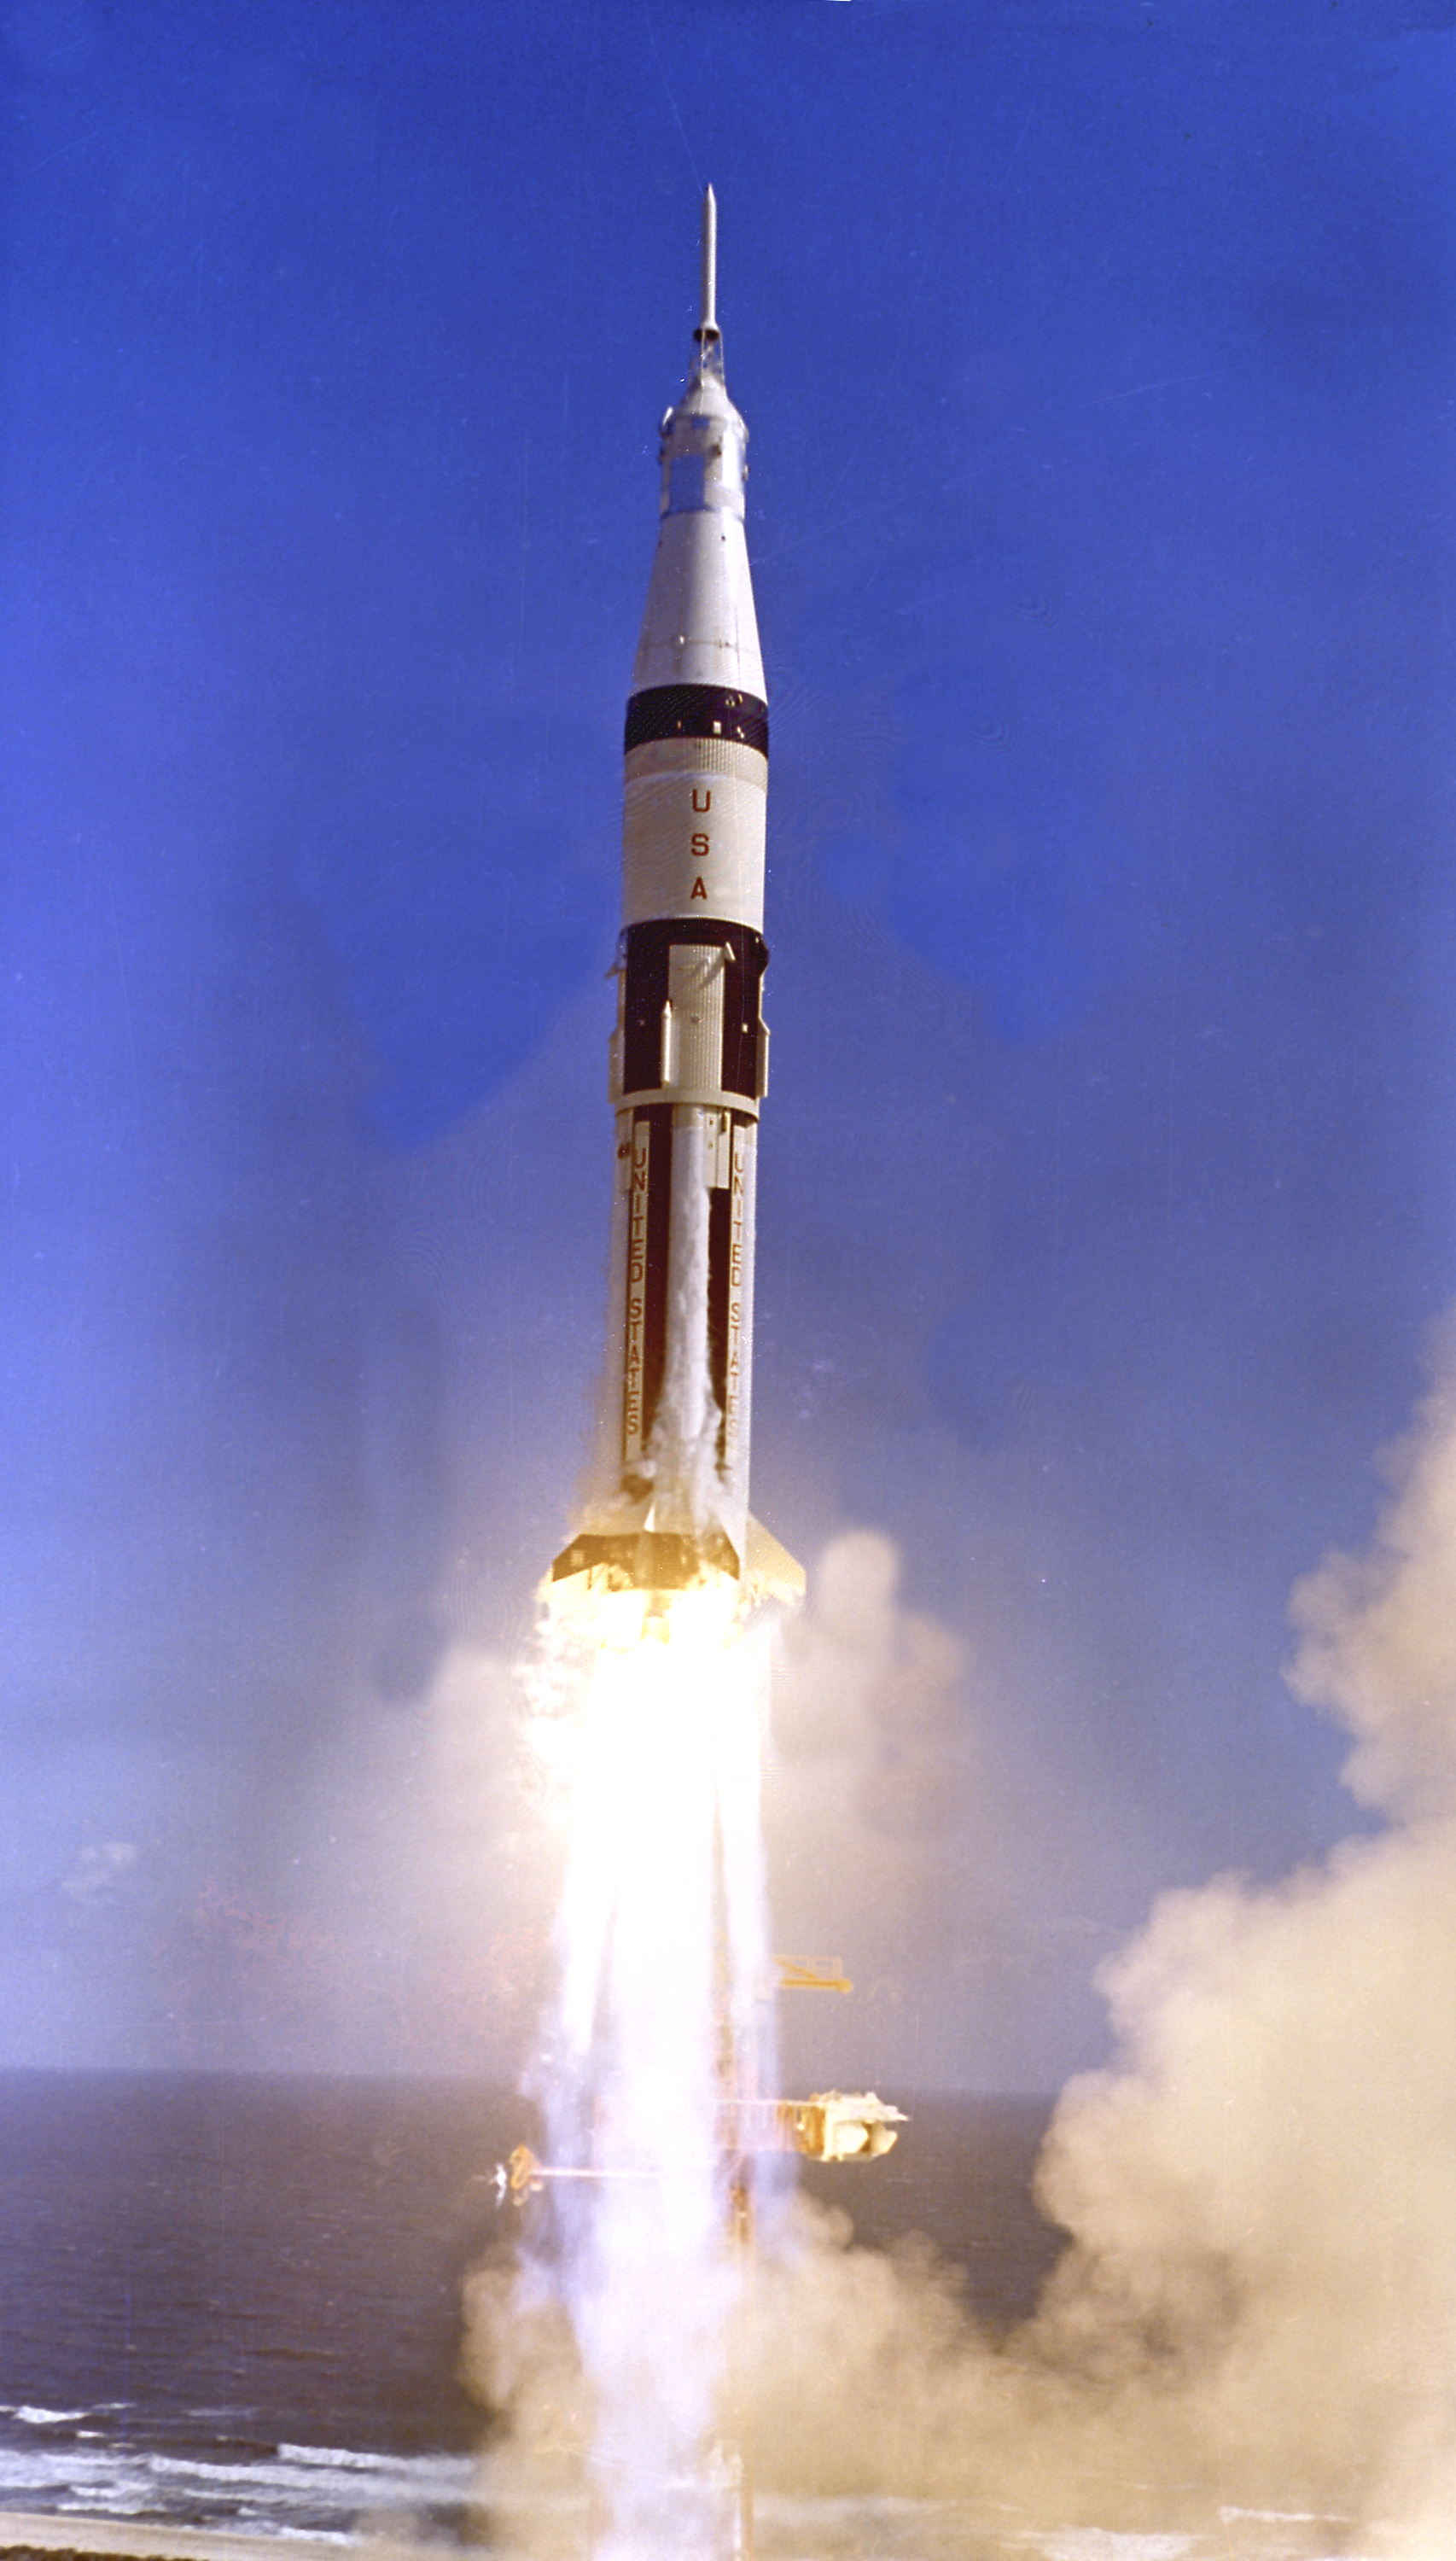 apollo 12 rocket - photo #12